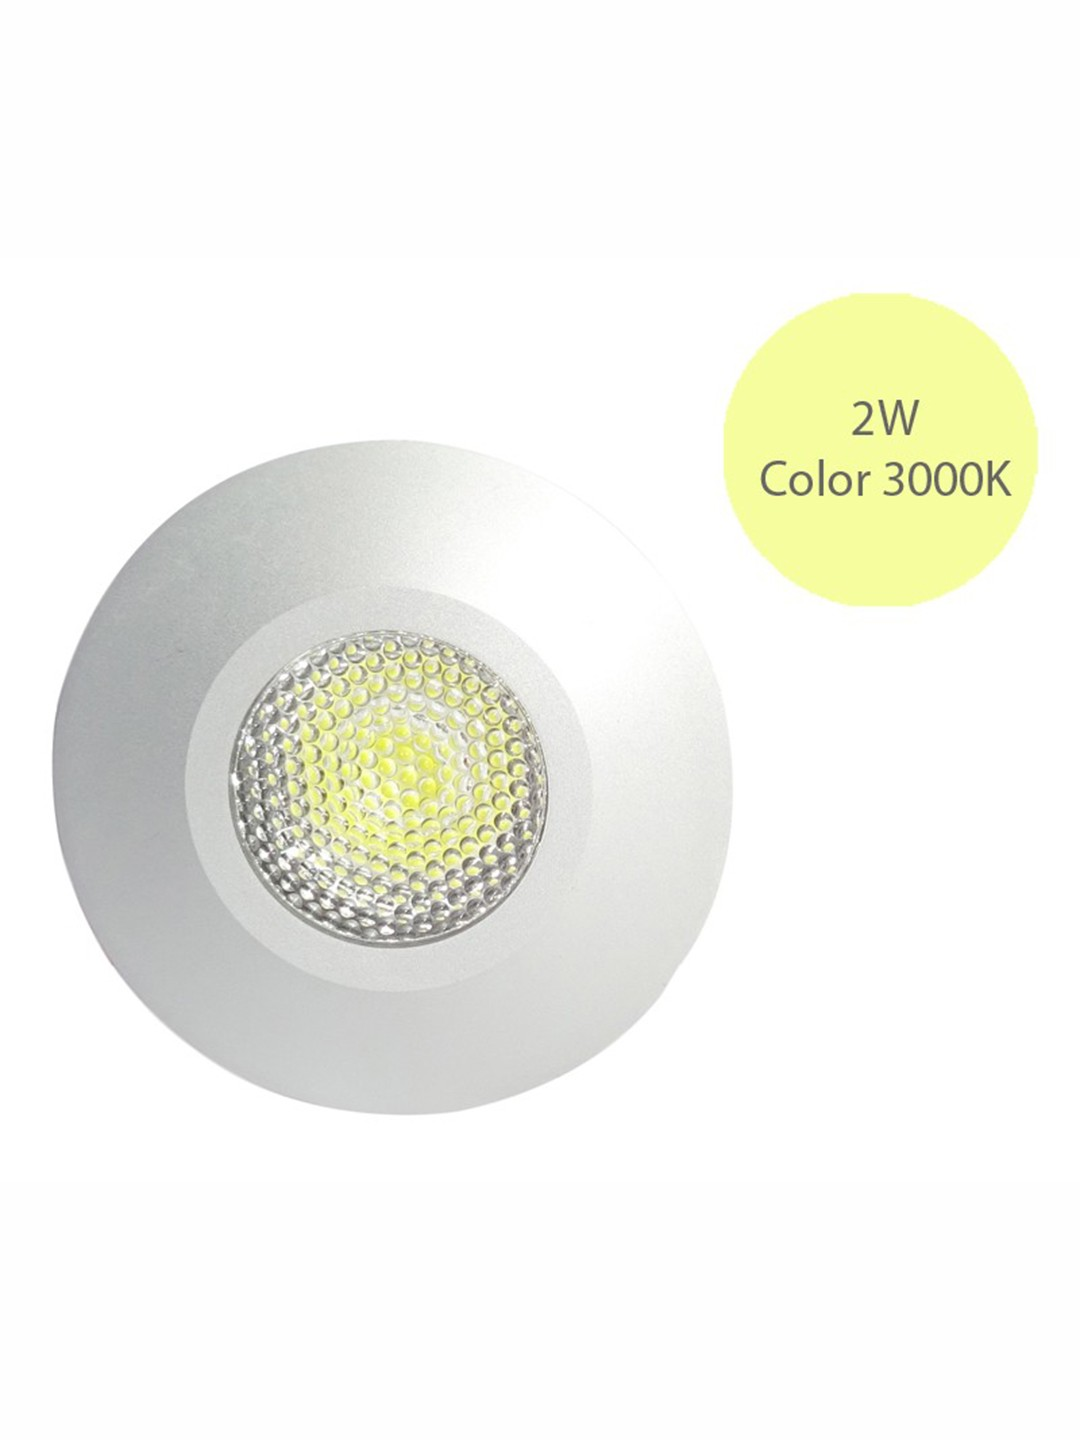 2W Philips Recessed Spot Light Warm White